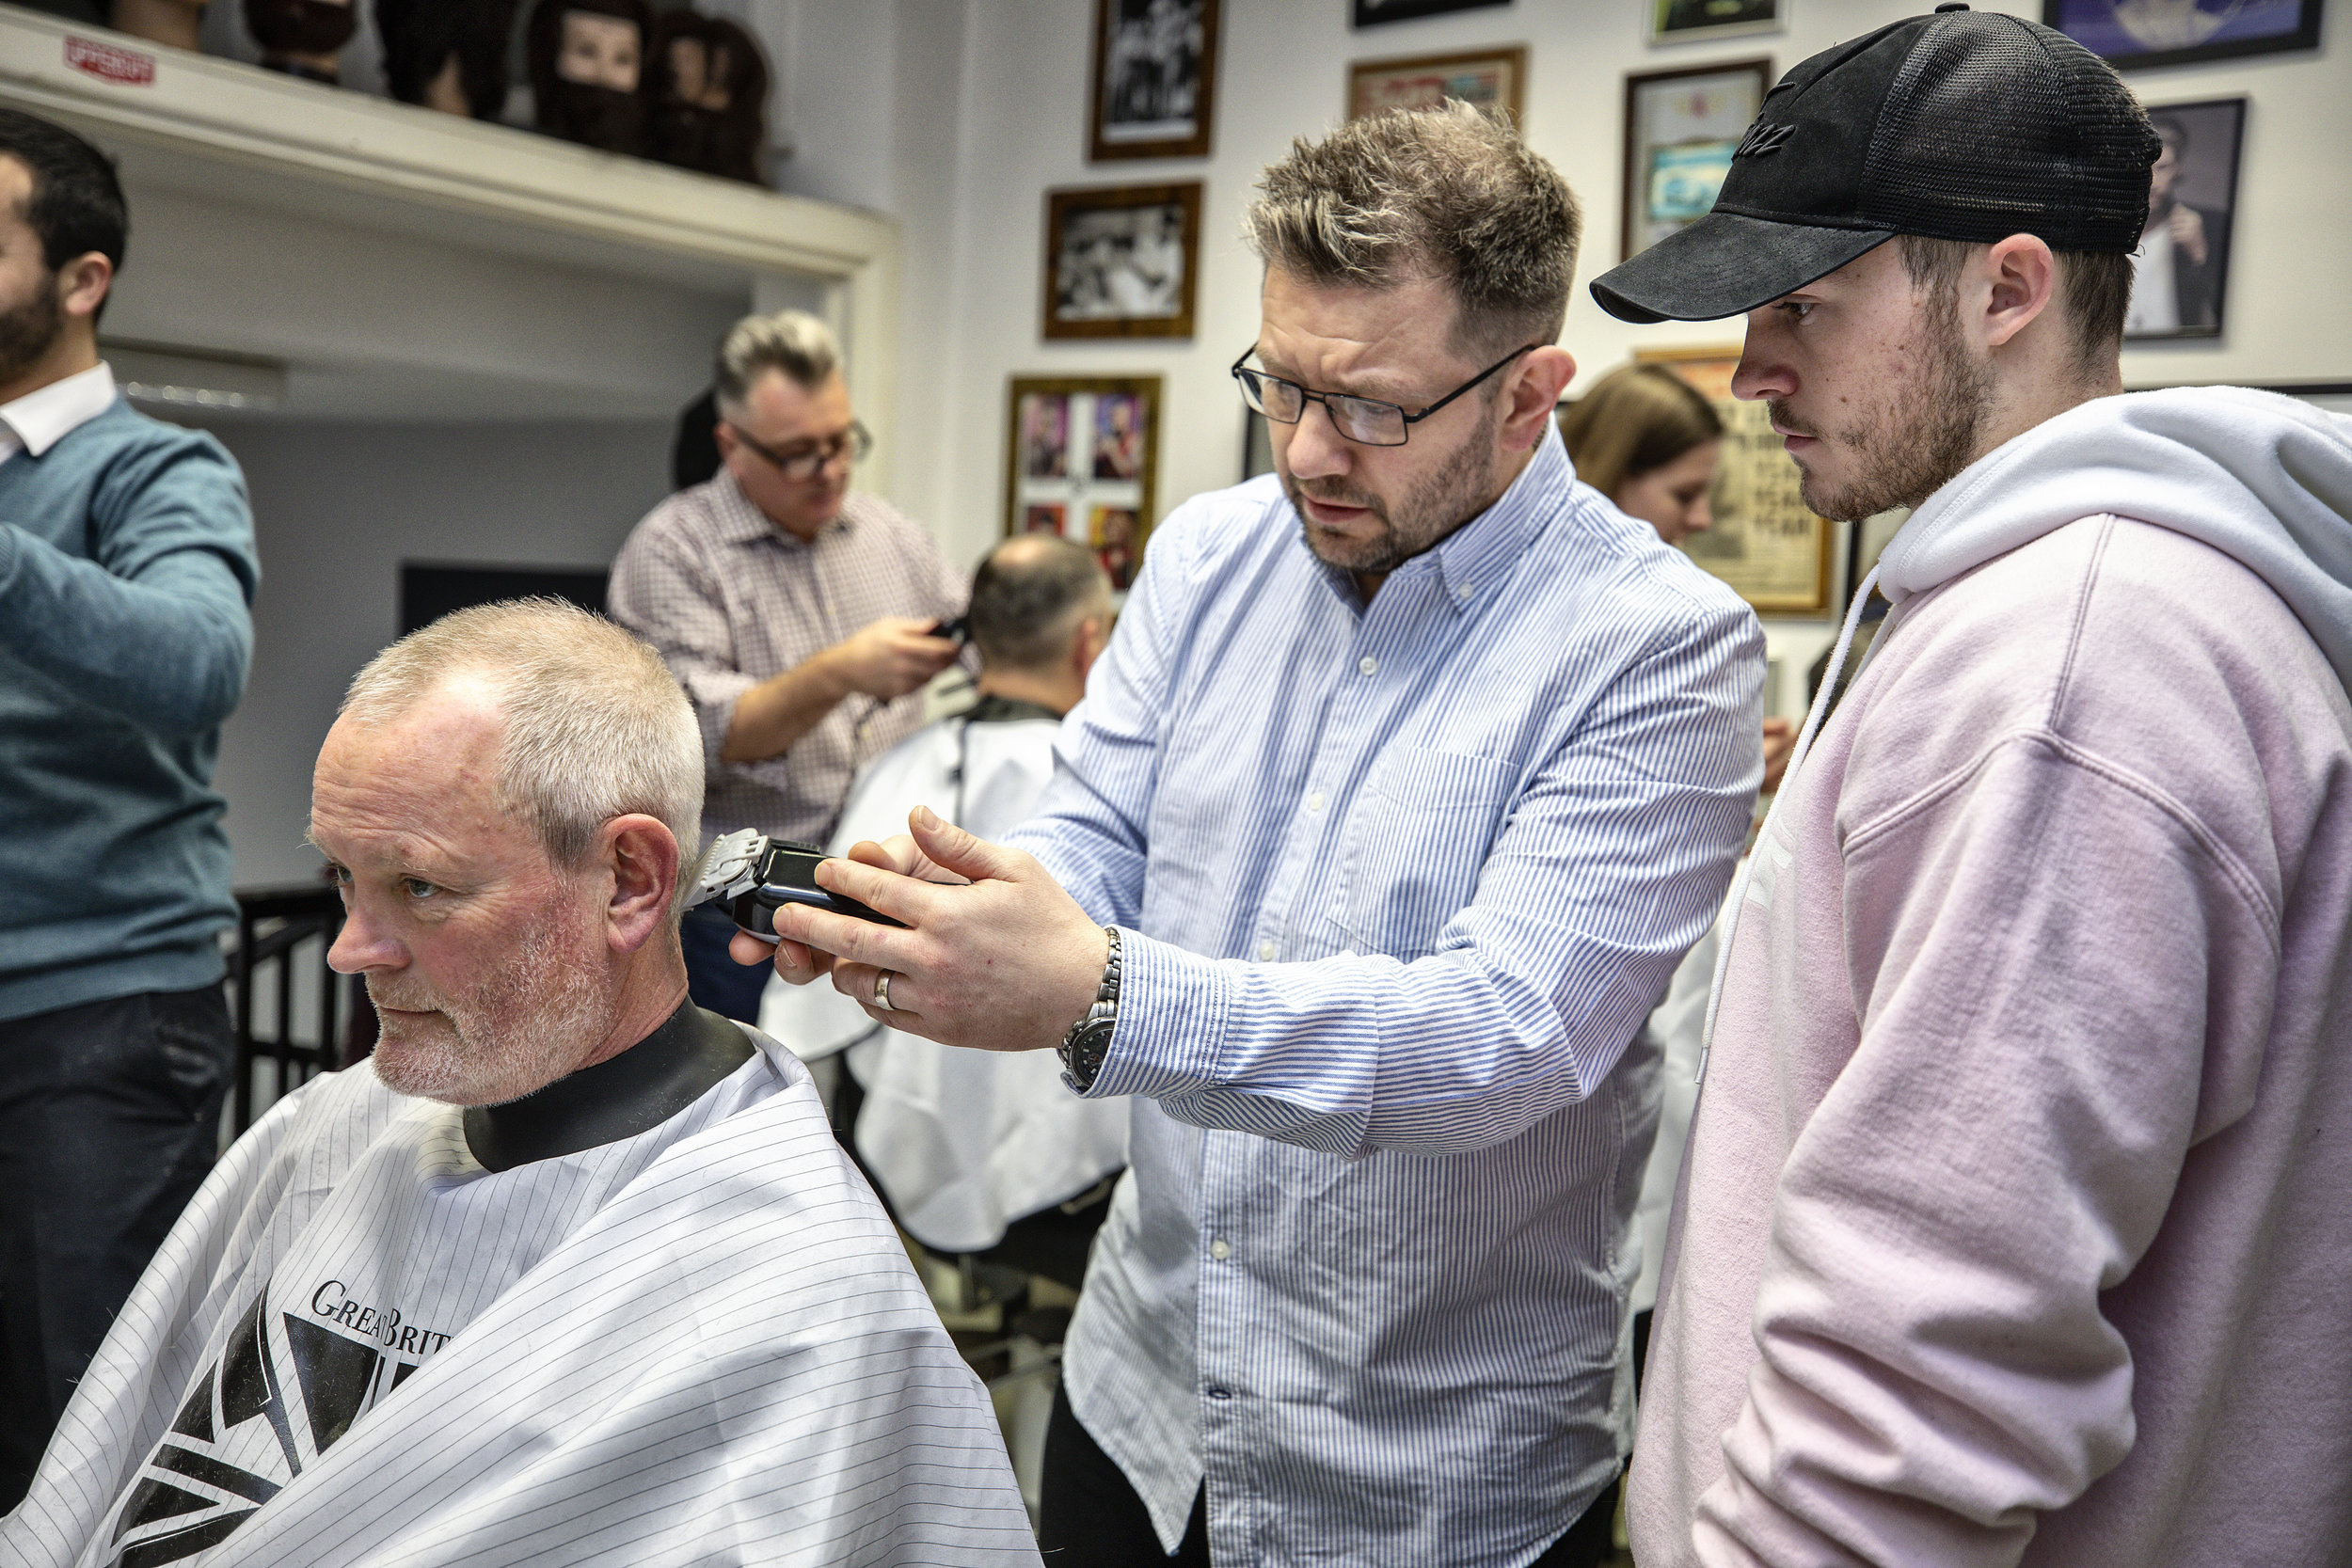 On the Road - Mike Taylor Education has a dedicated team who can provide visits to your barbershop, salon, college or training academy